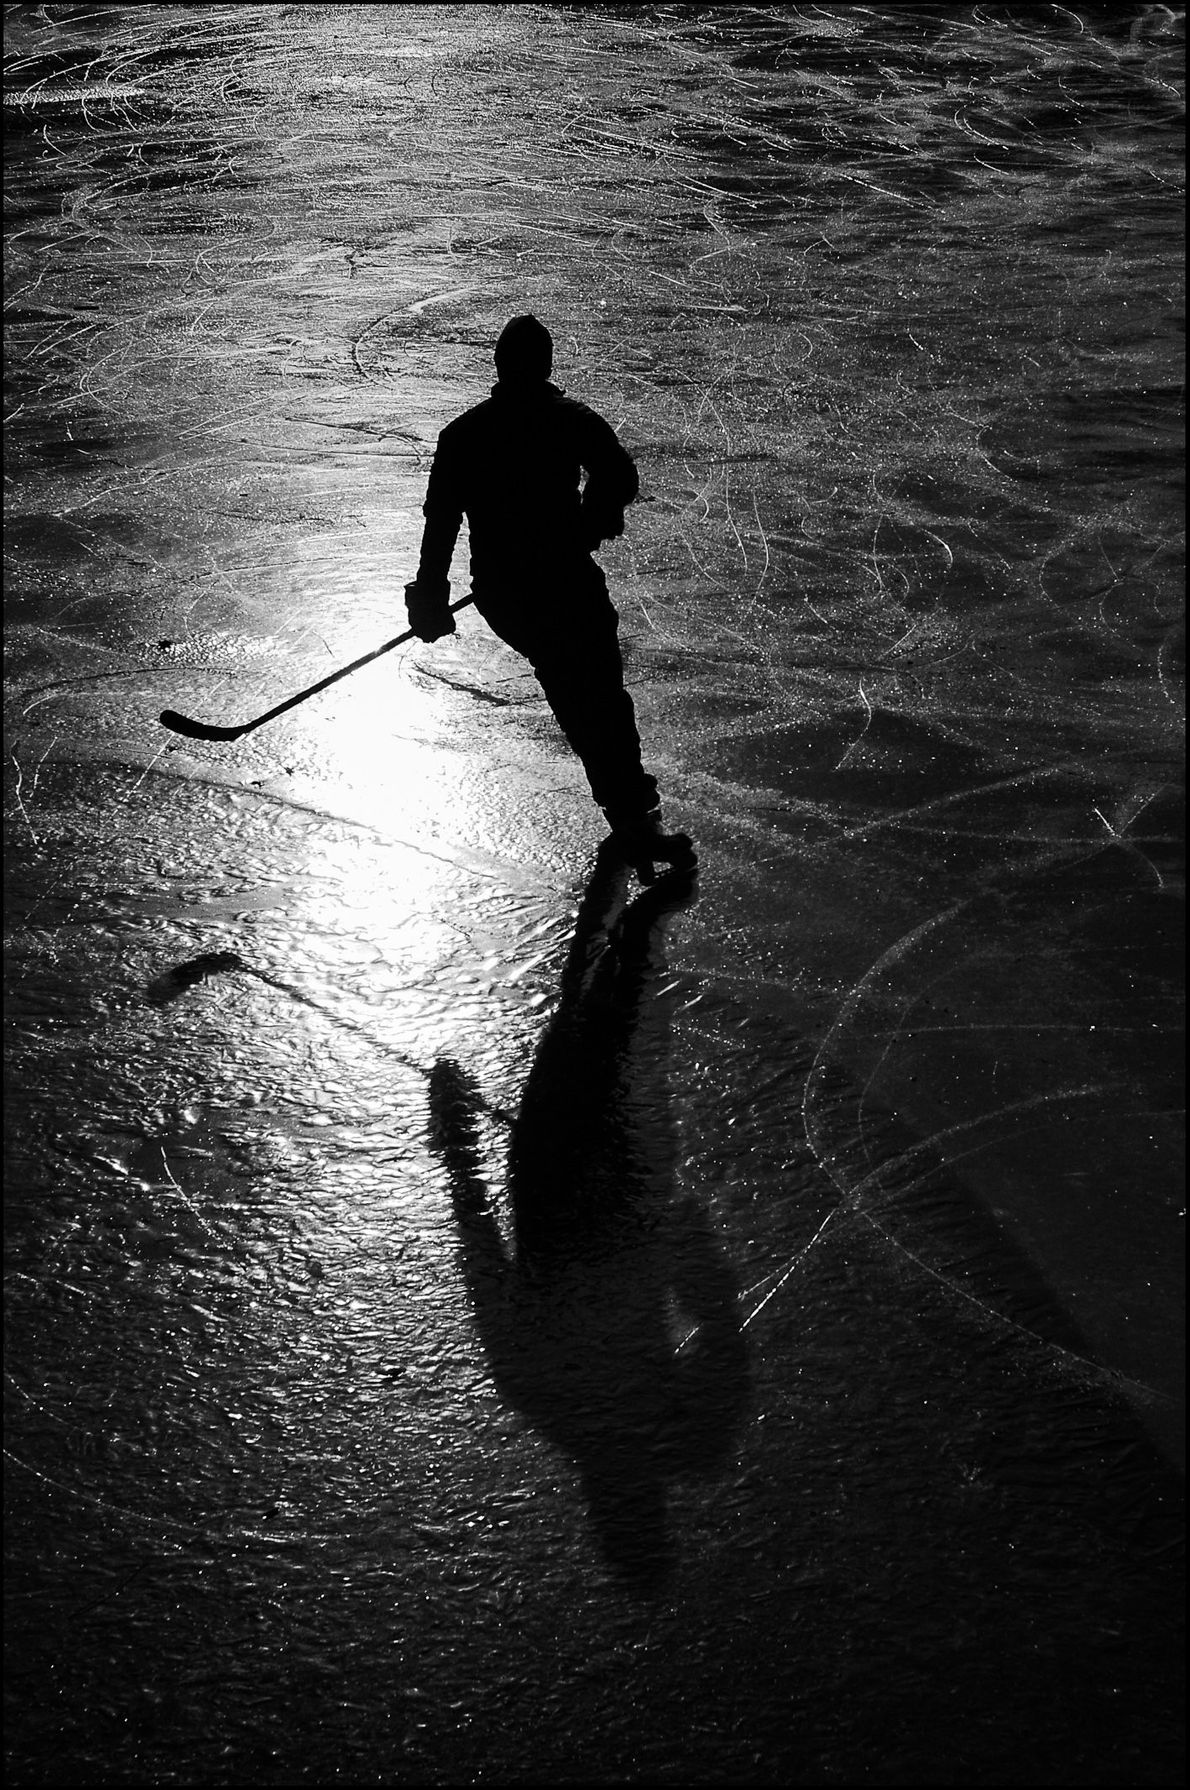 """""""A man warms up for a pick-up ice hockey game in Boston Public Gardens,"""" writes Your ..."""